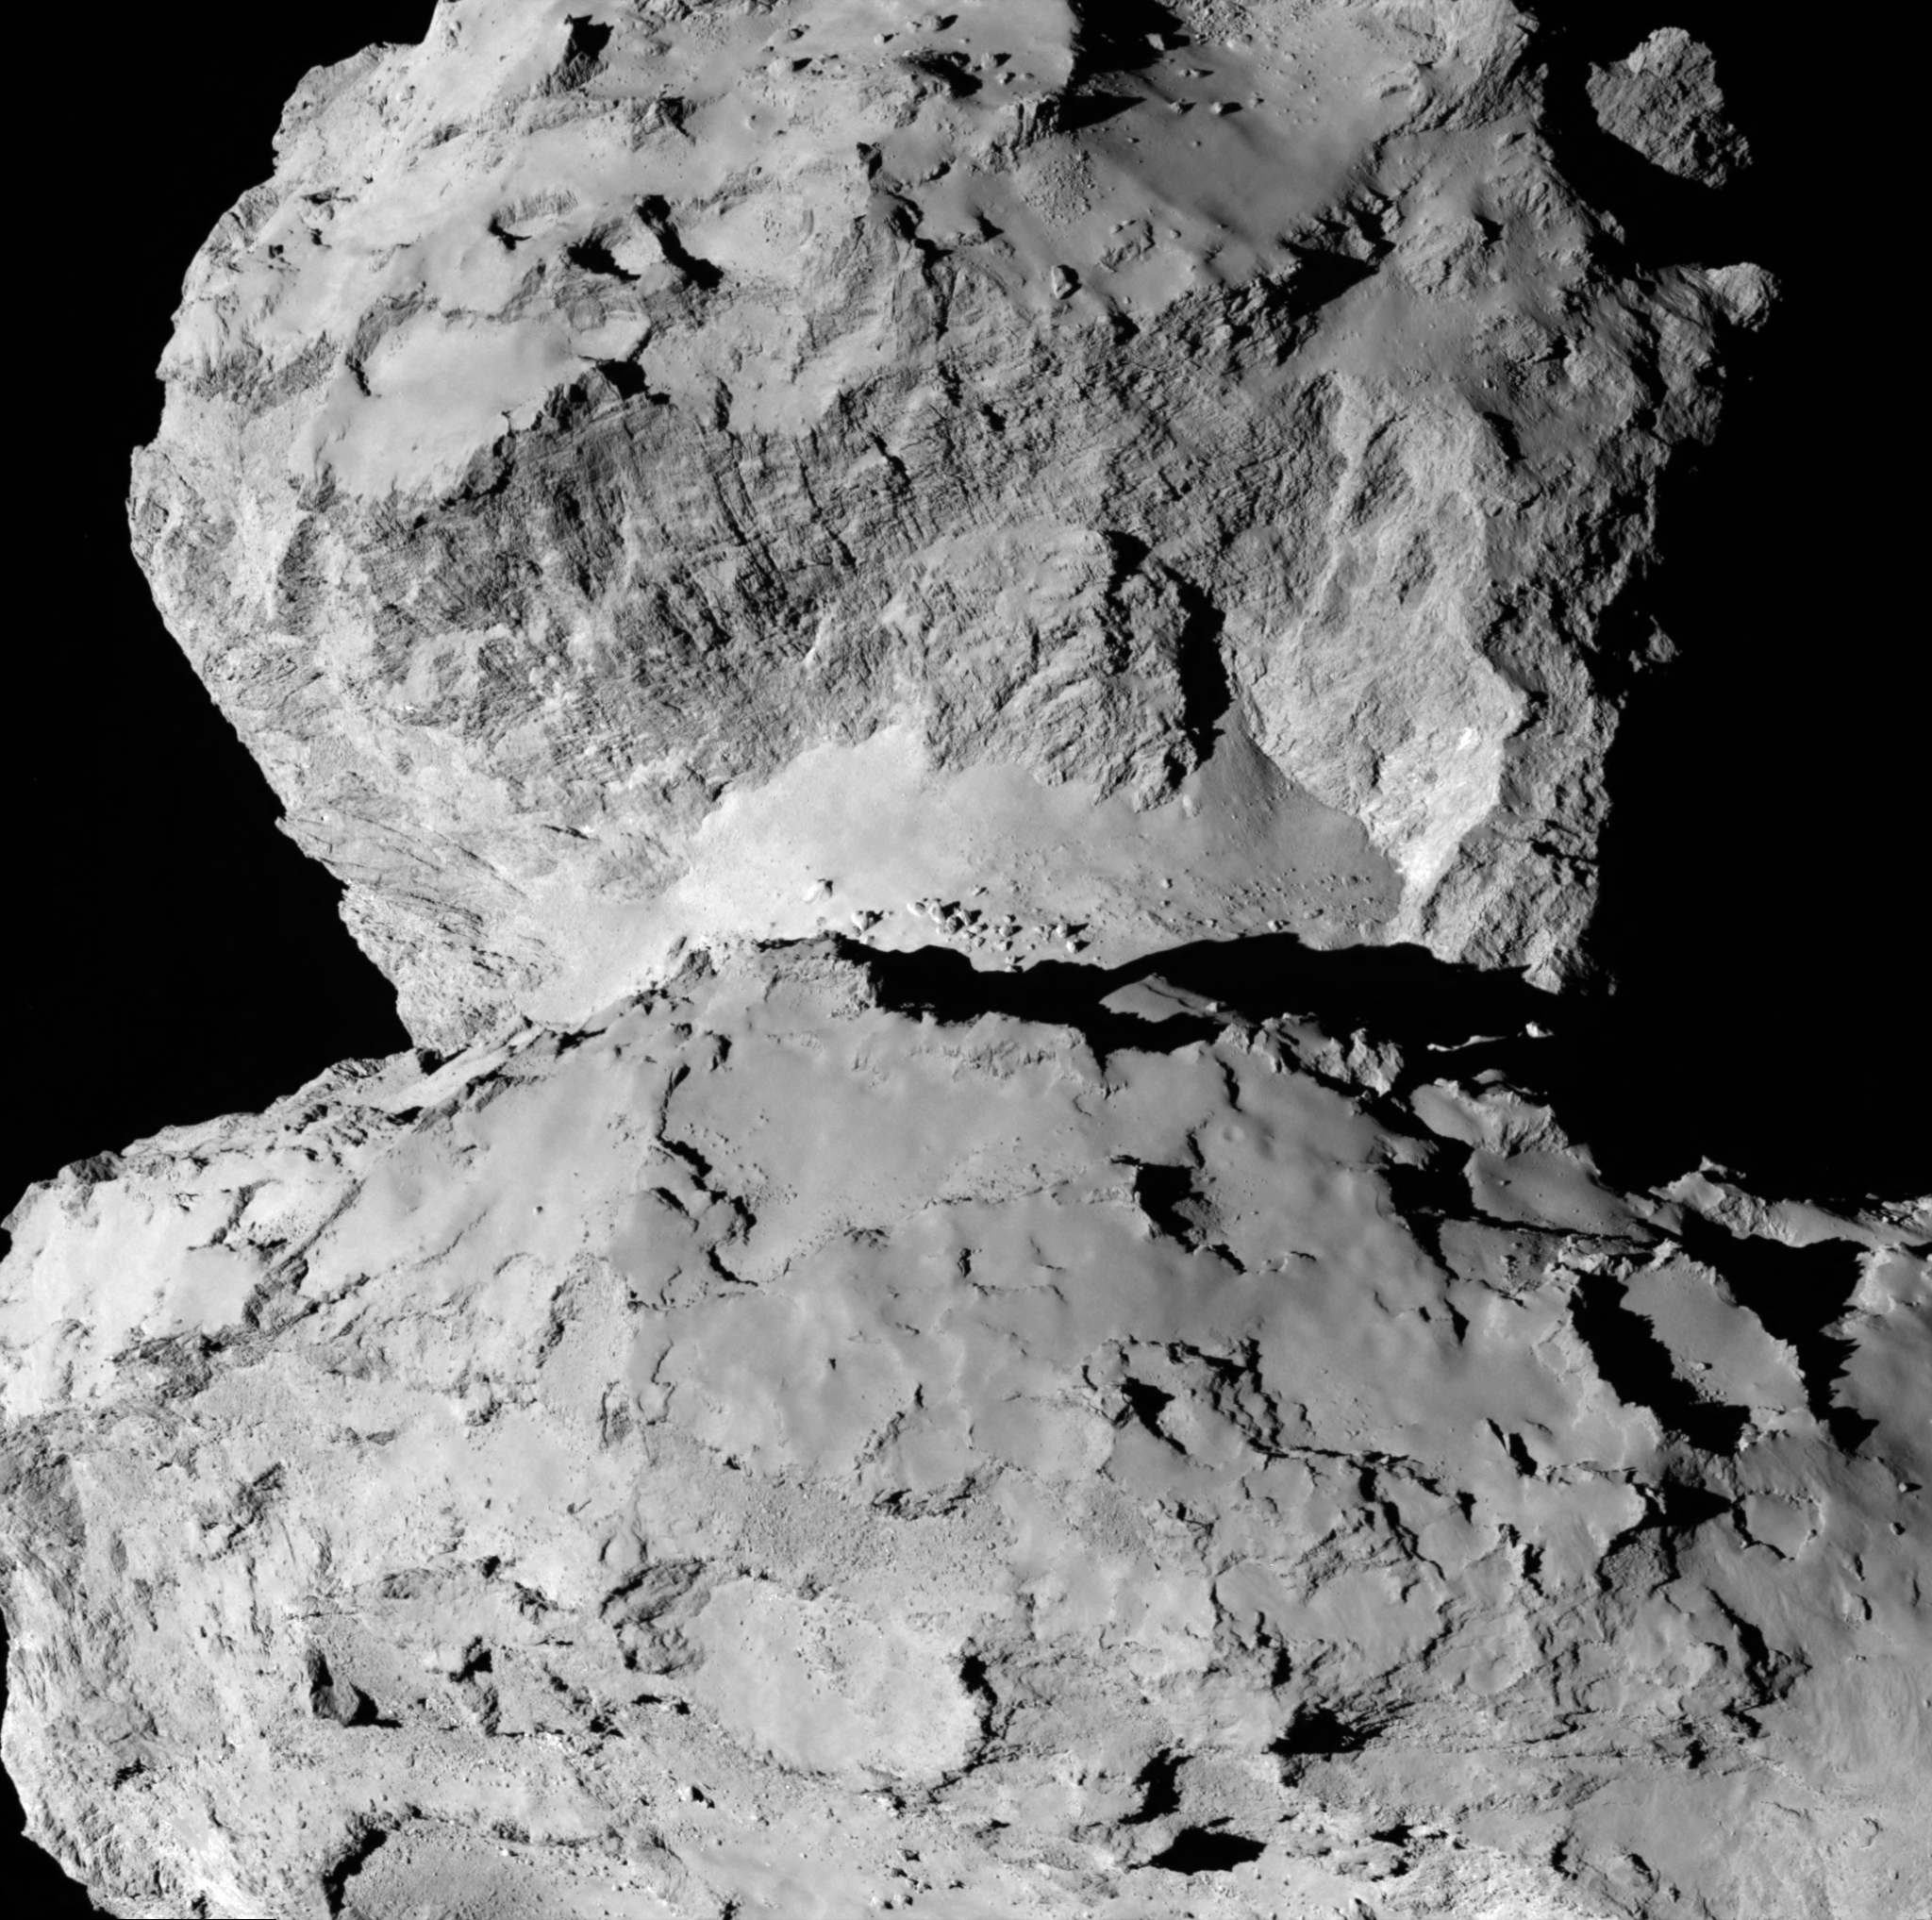 philae comet lander nasa - photo #15